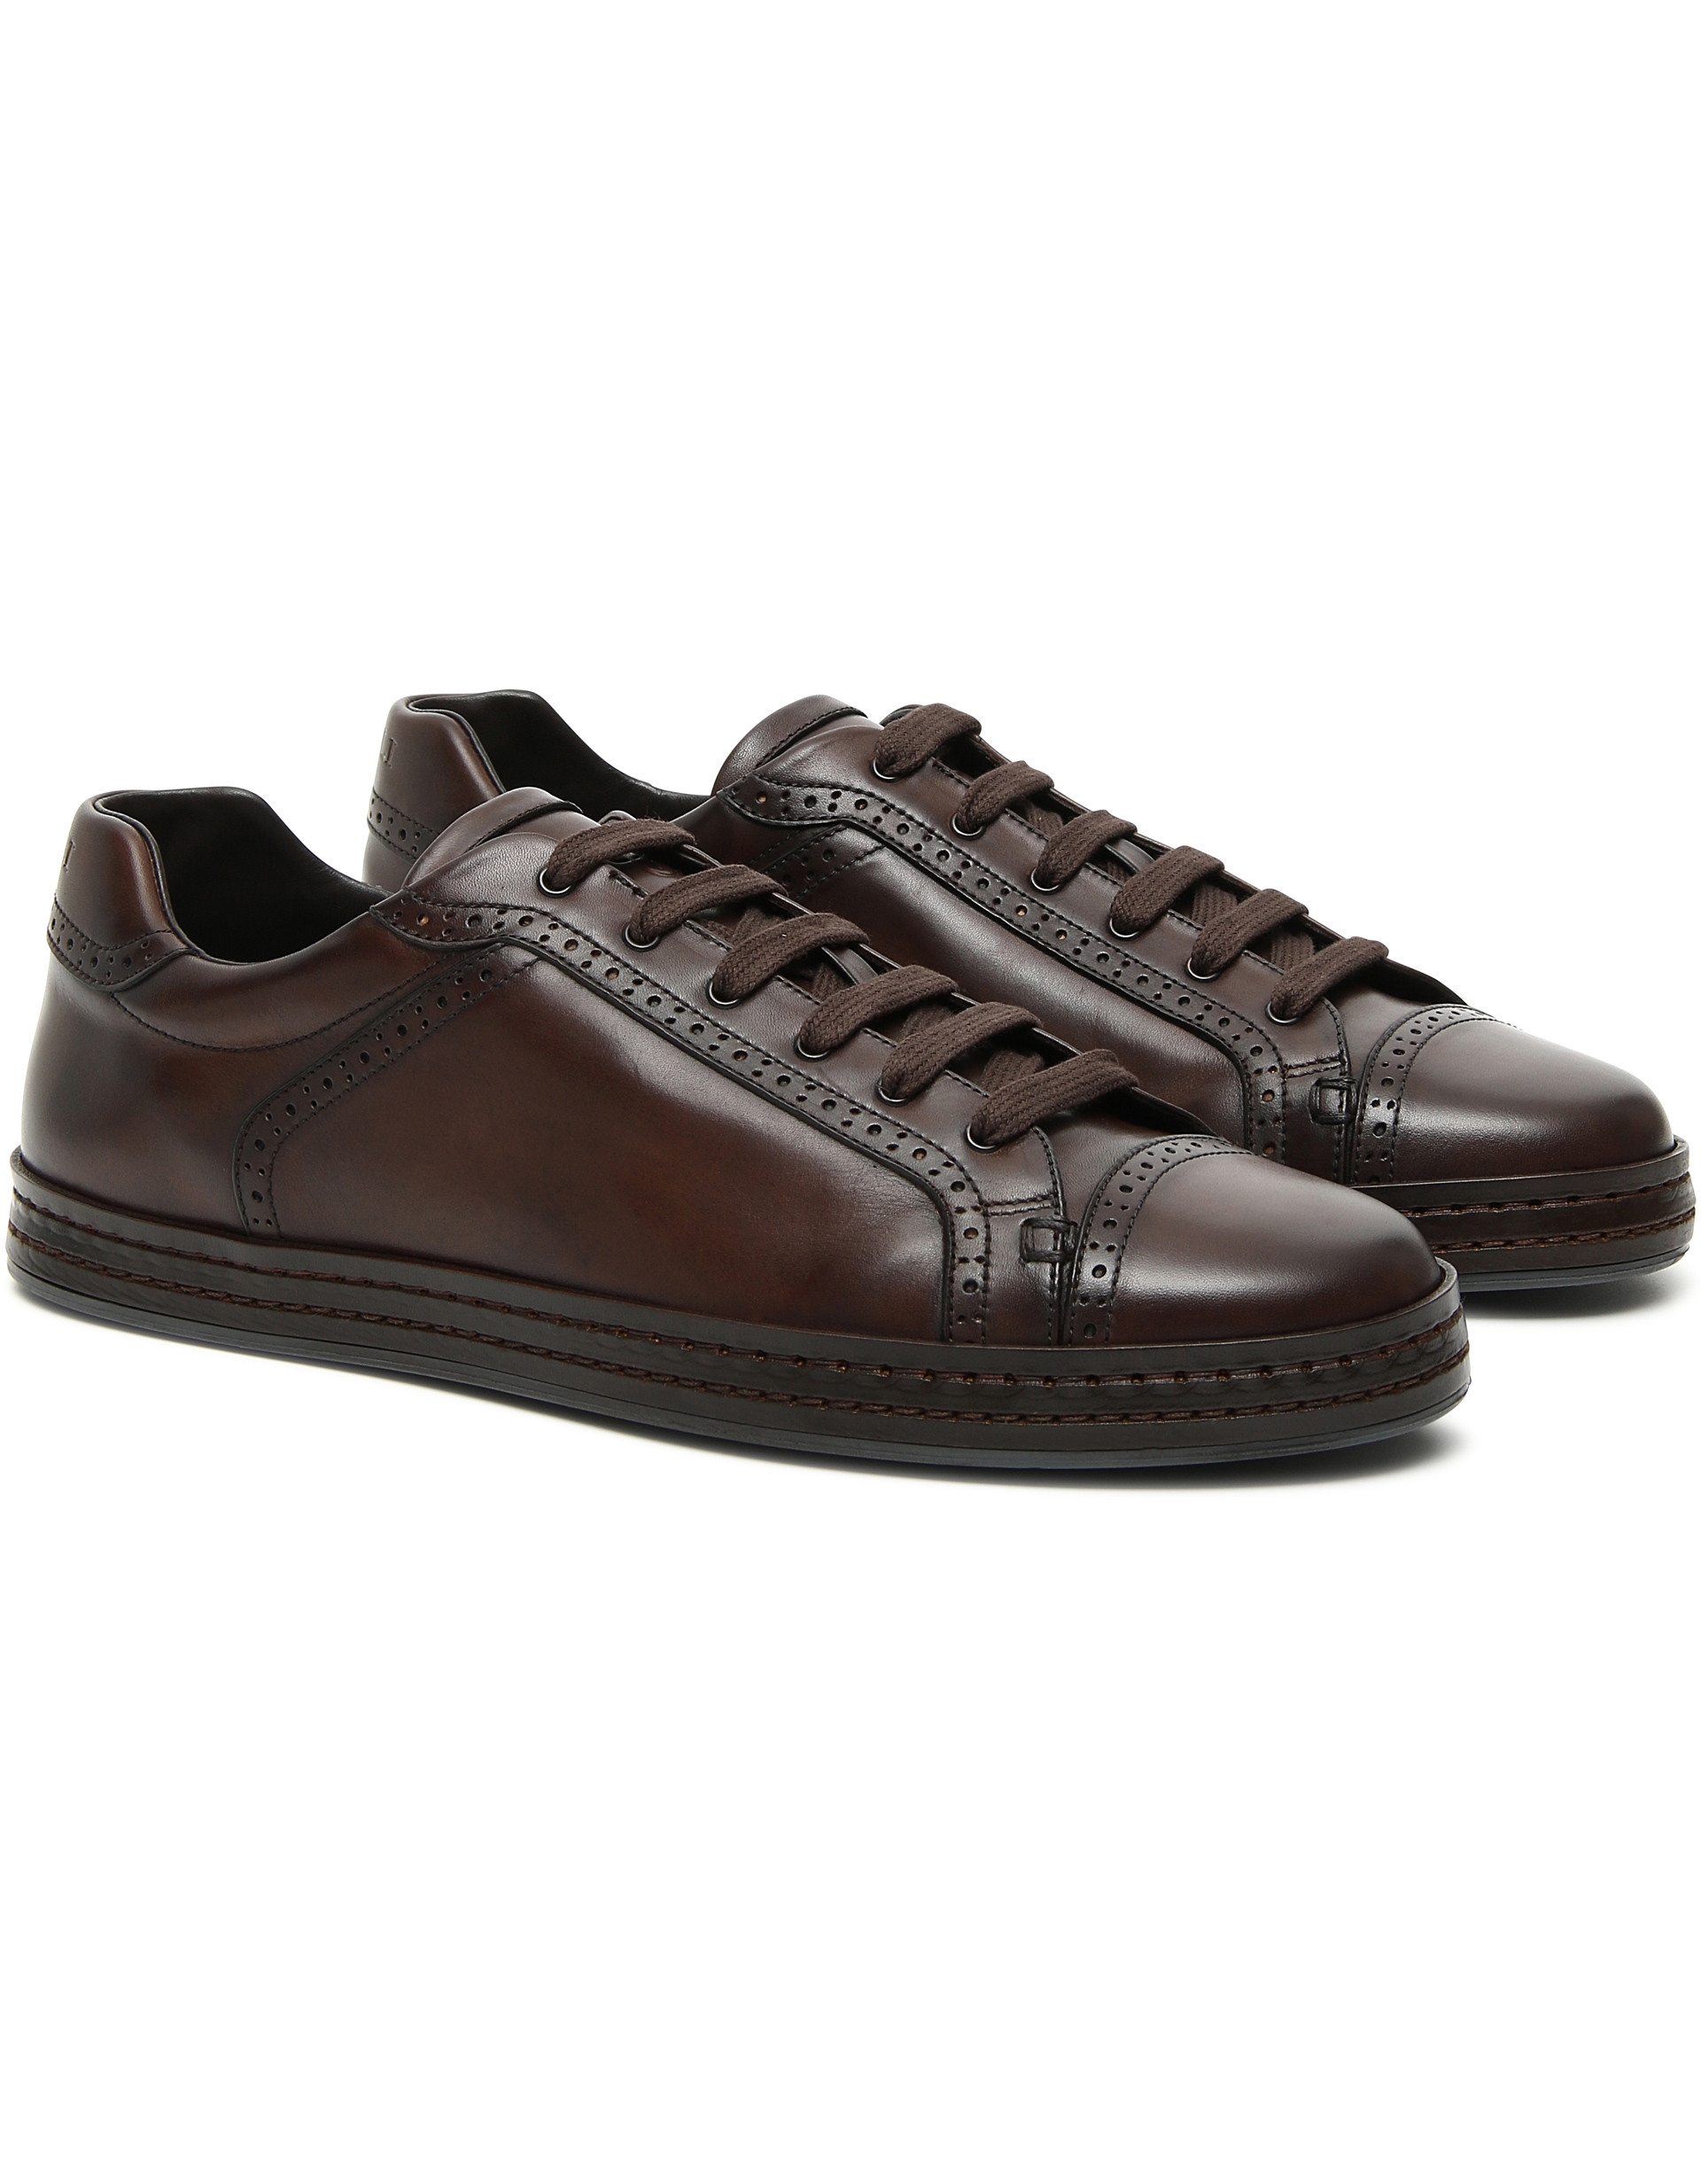 BROWN CRUST CALFSKIN SNEAKERS WITH BROGUE DETAILING